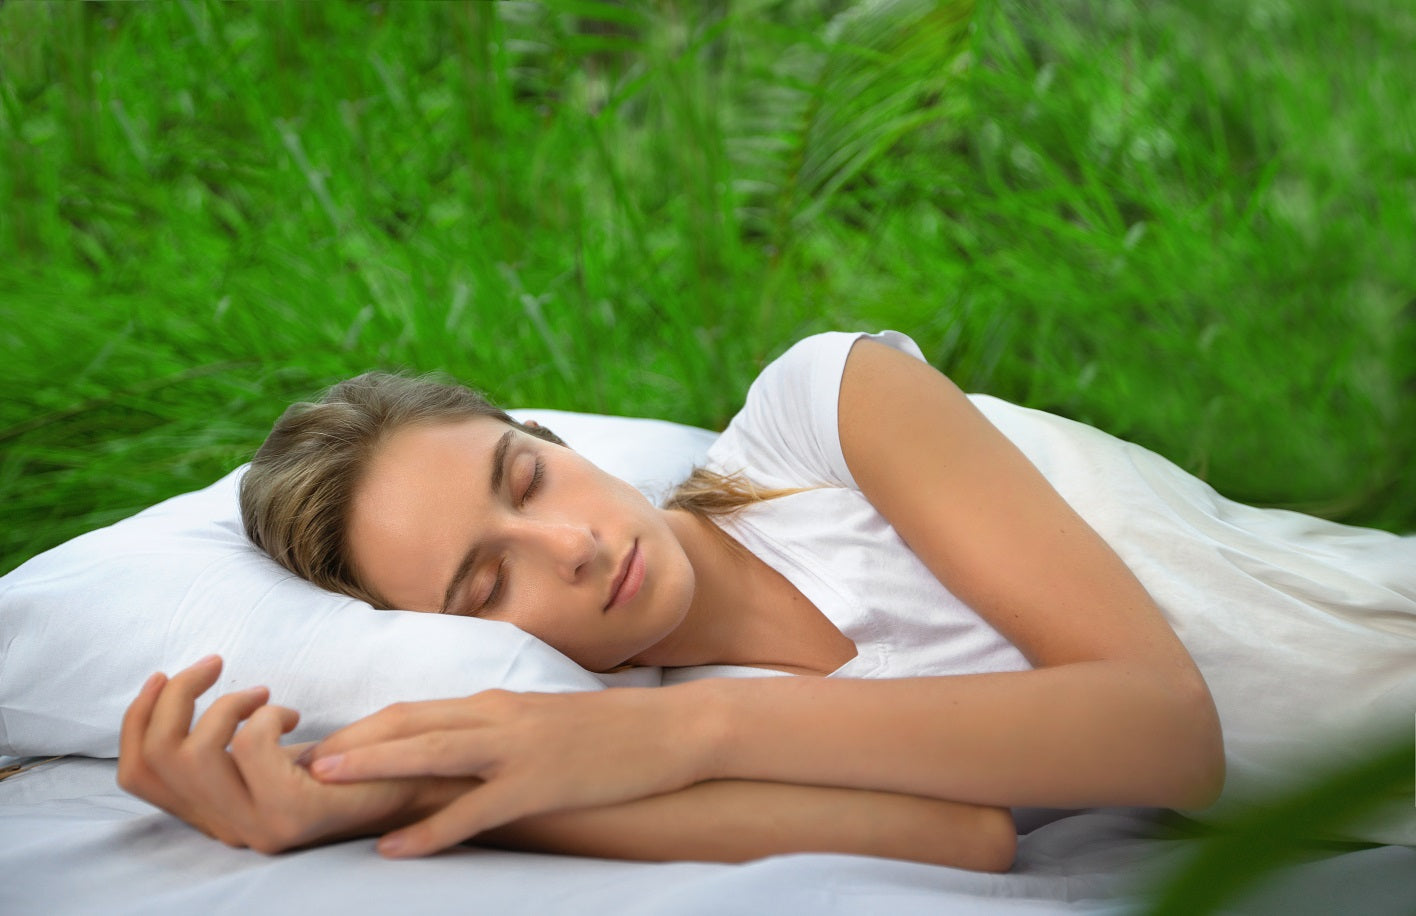 CBD helps woman sleep on white pillow in grass